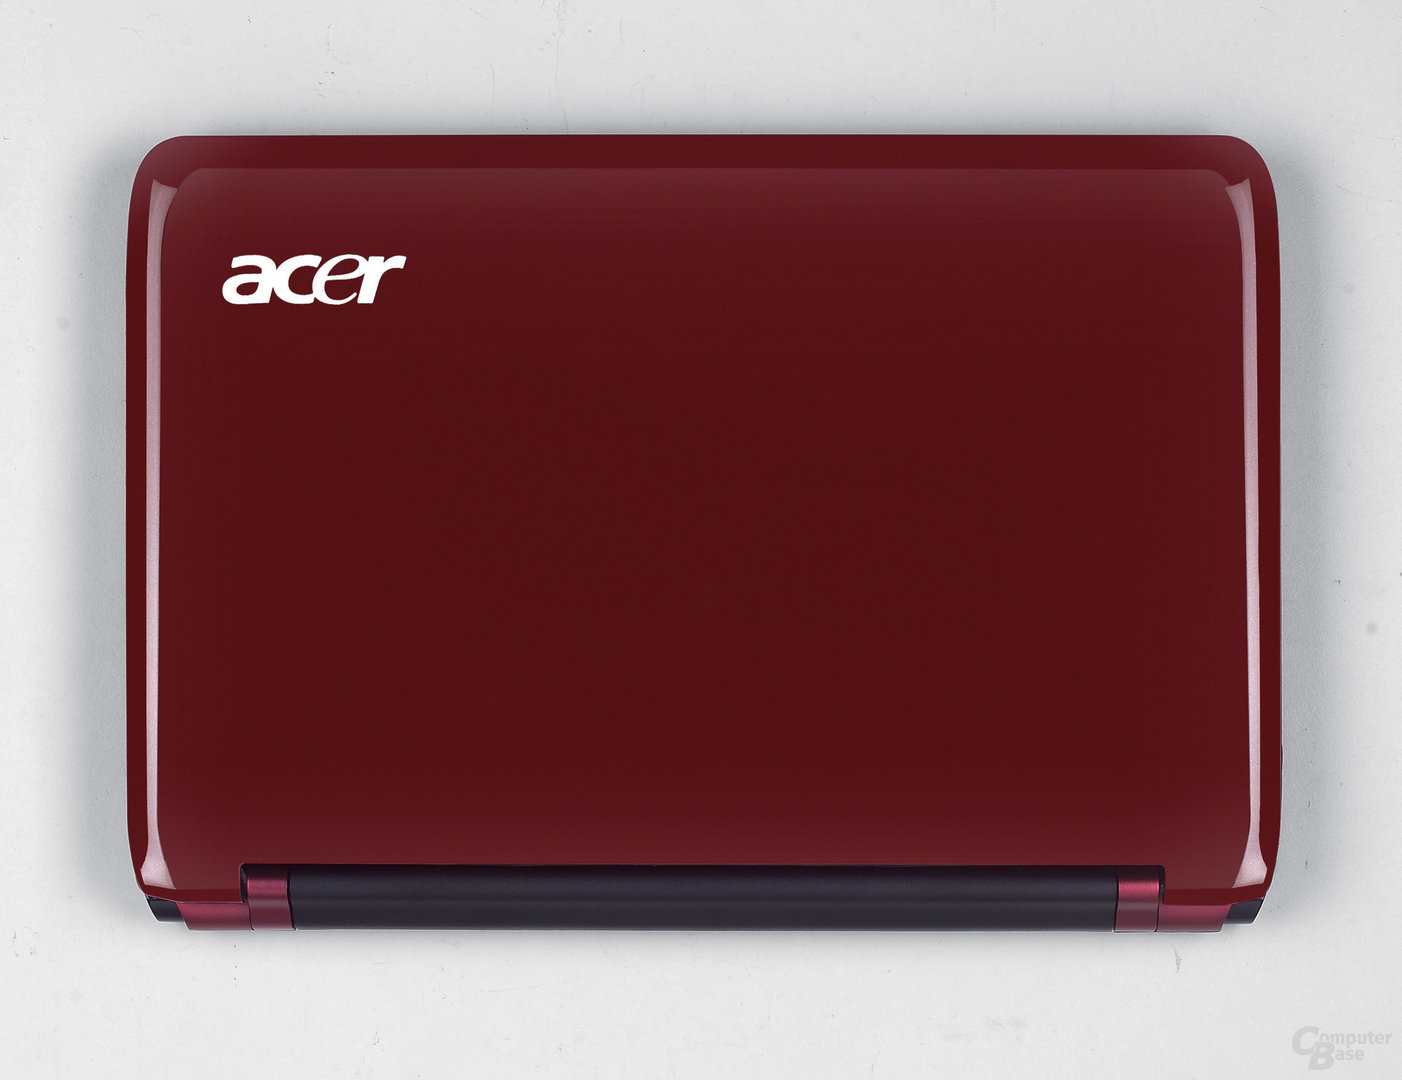 Acer Aspire one 751 in rot